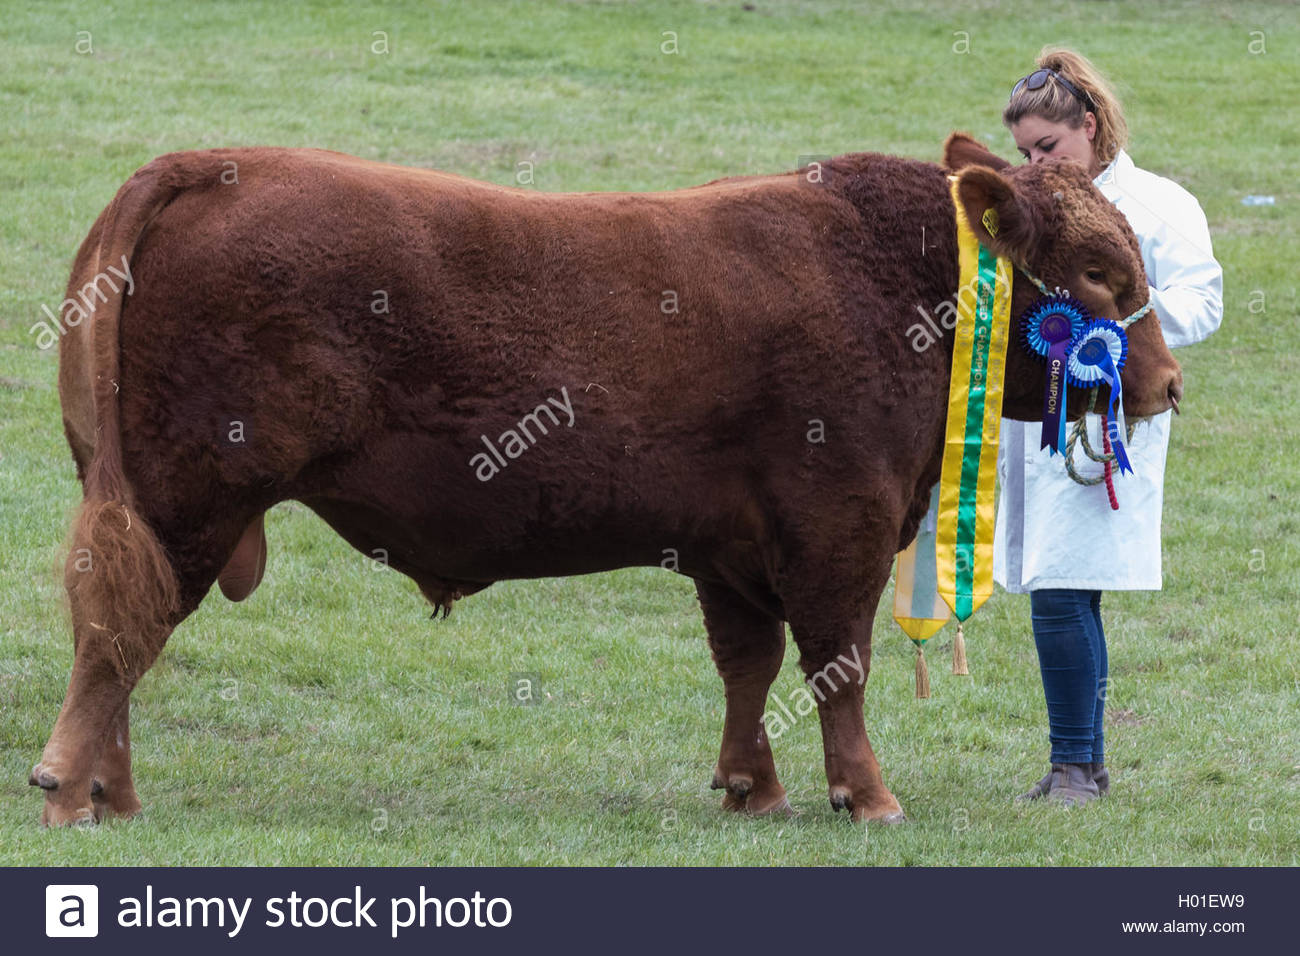 A South Devon bull, breed champion in the show ring at the Royal Berkshire County Show with a young handler. - Stock Image